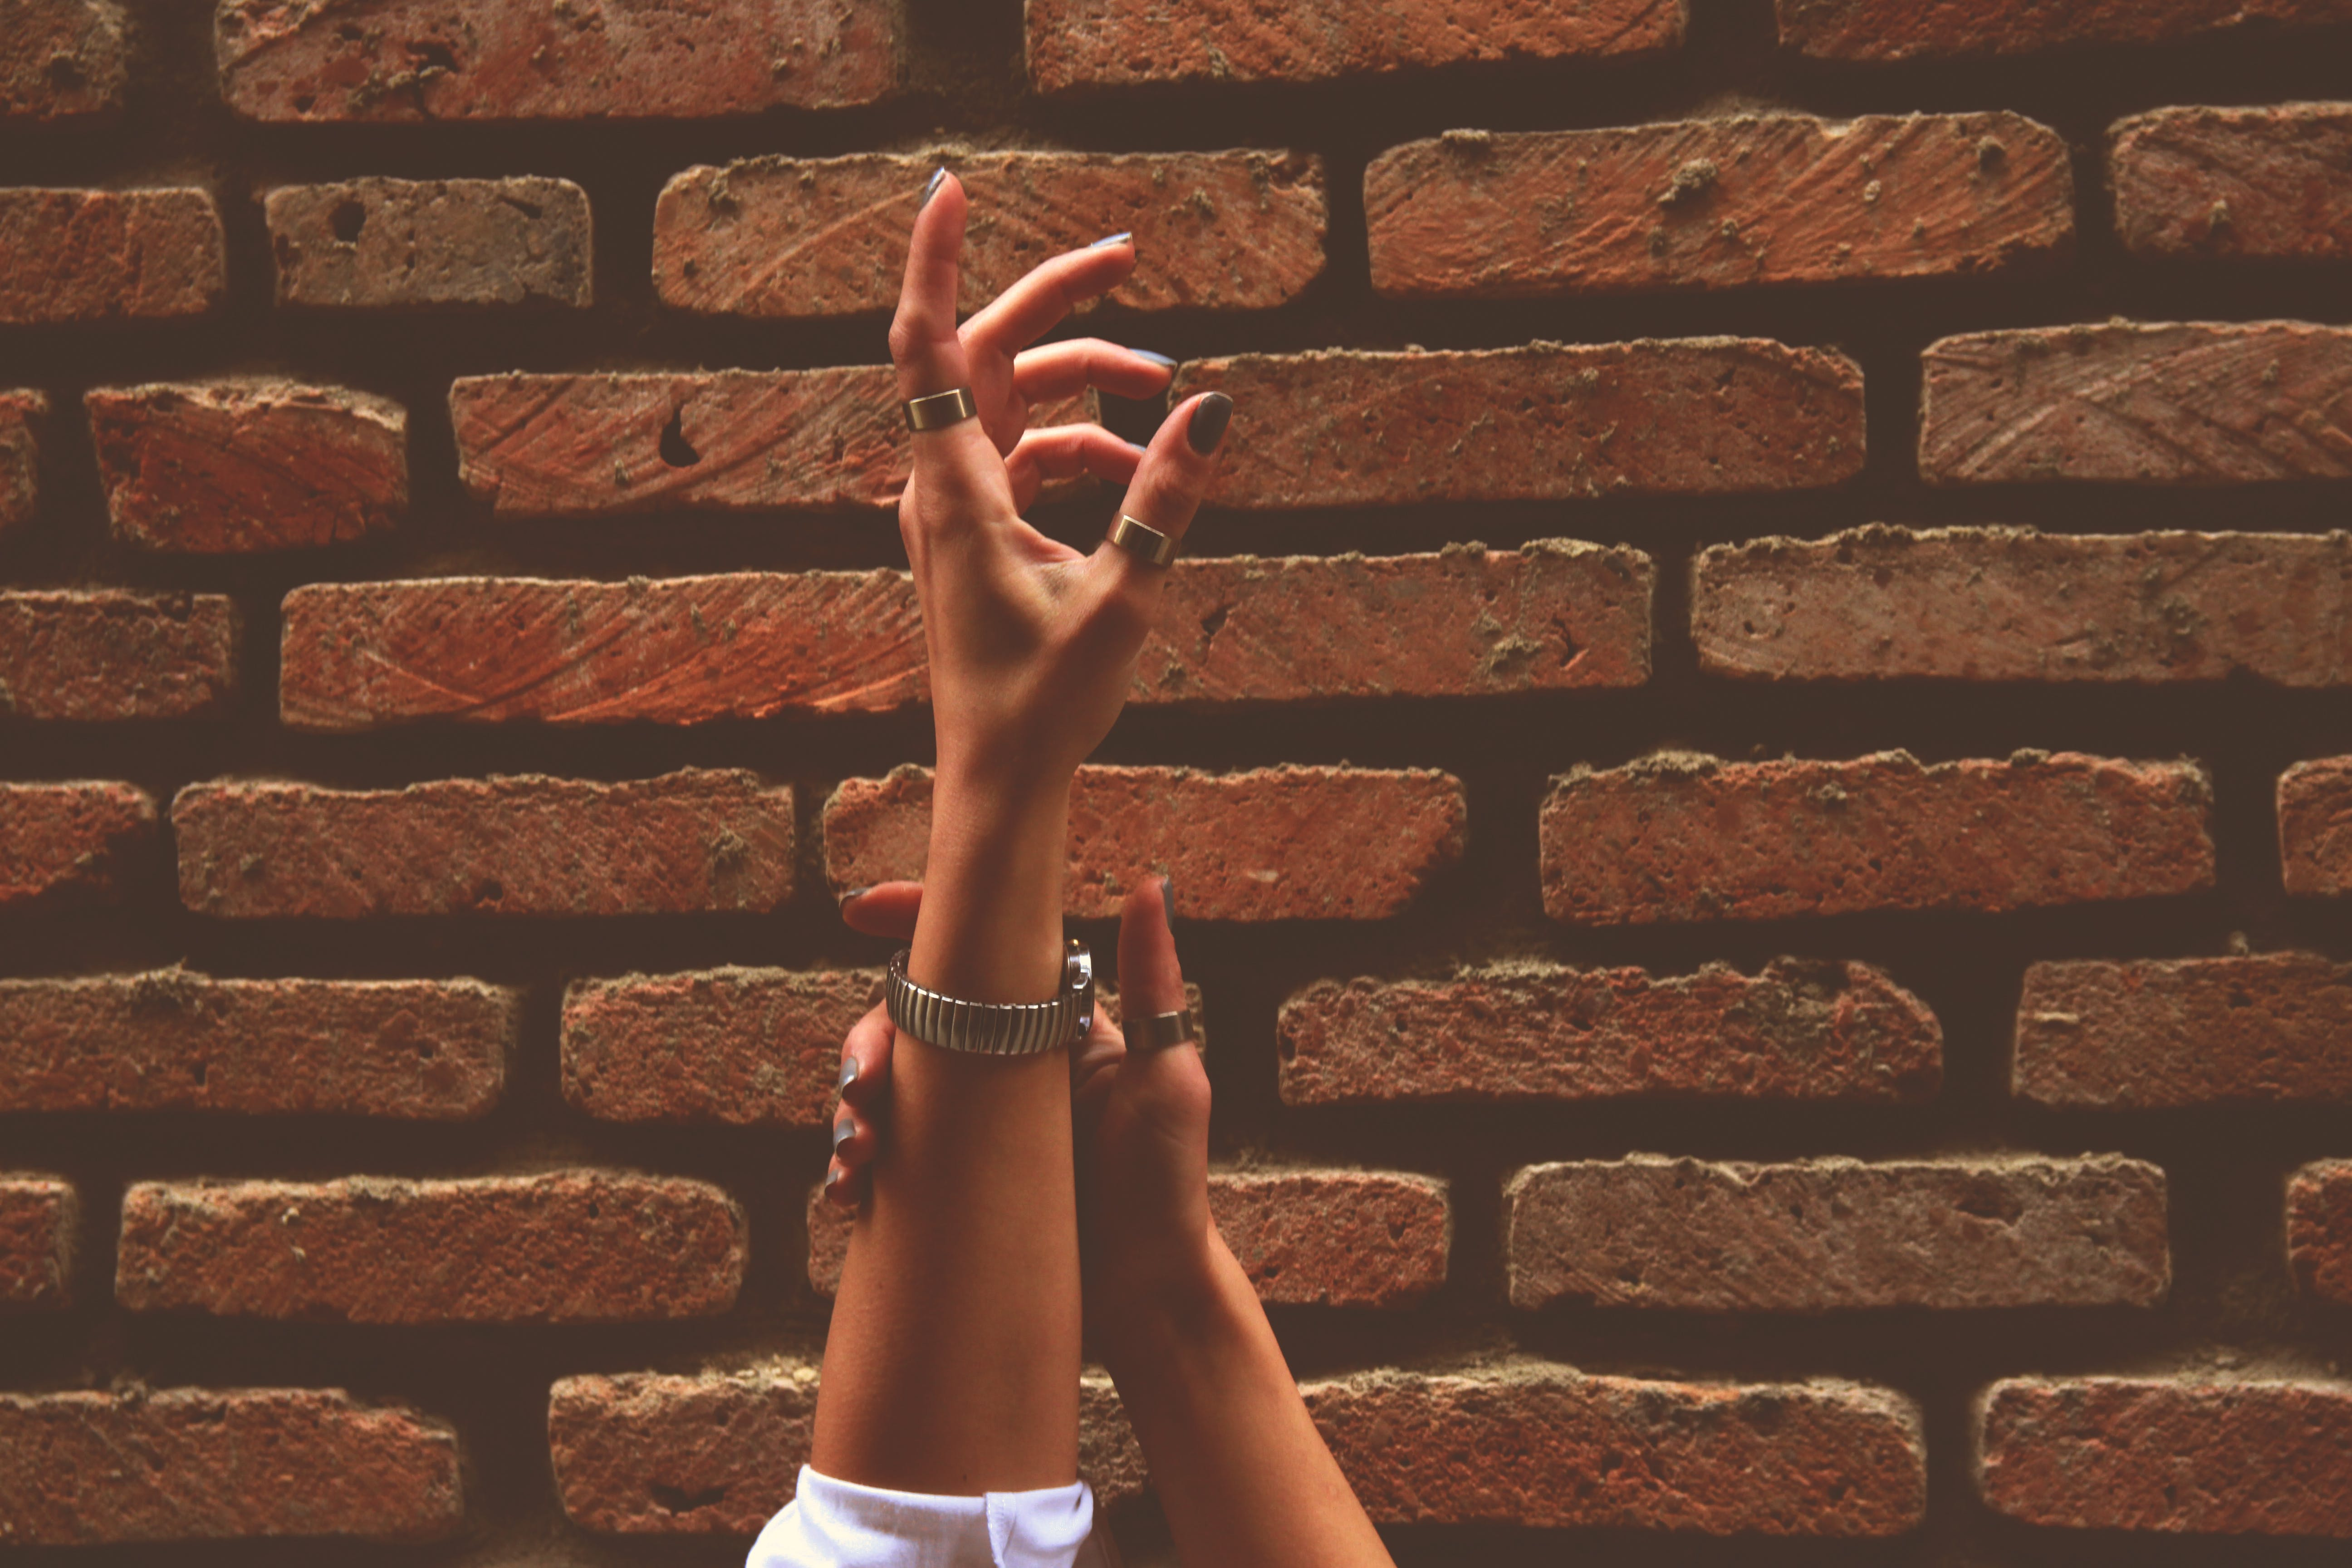 Person Wearing Watch and Rings Raising Left Hand Near Brick Wall